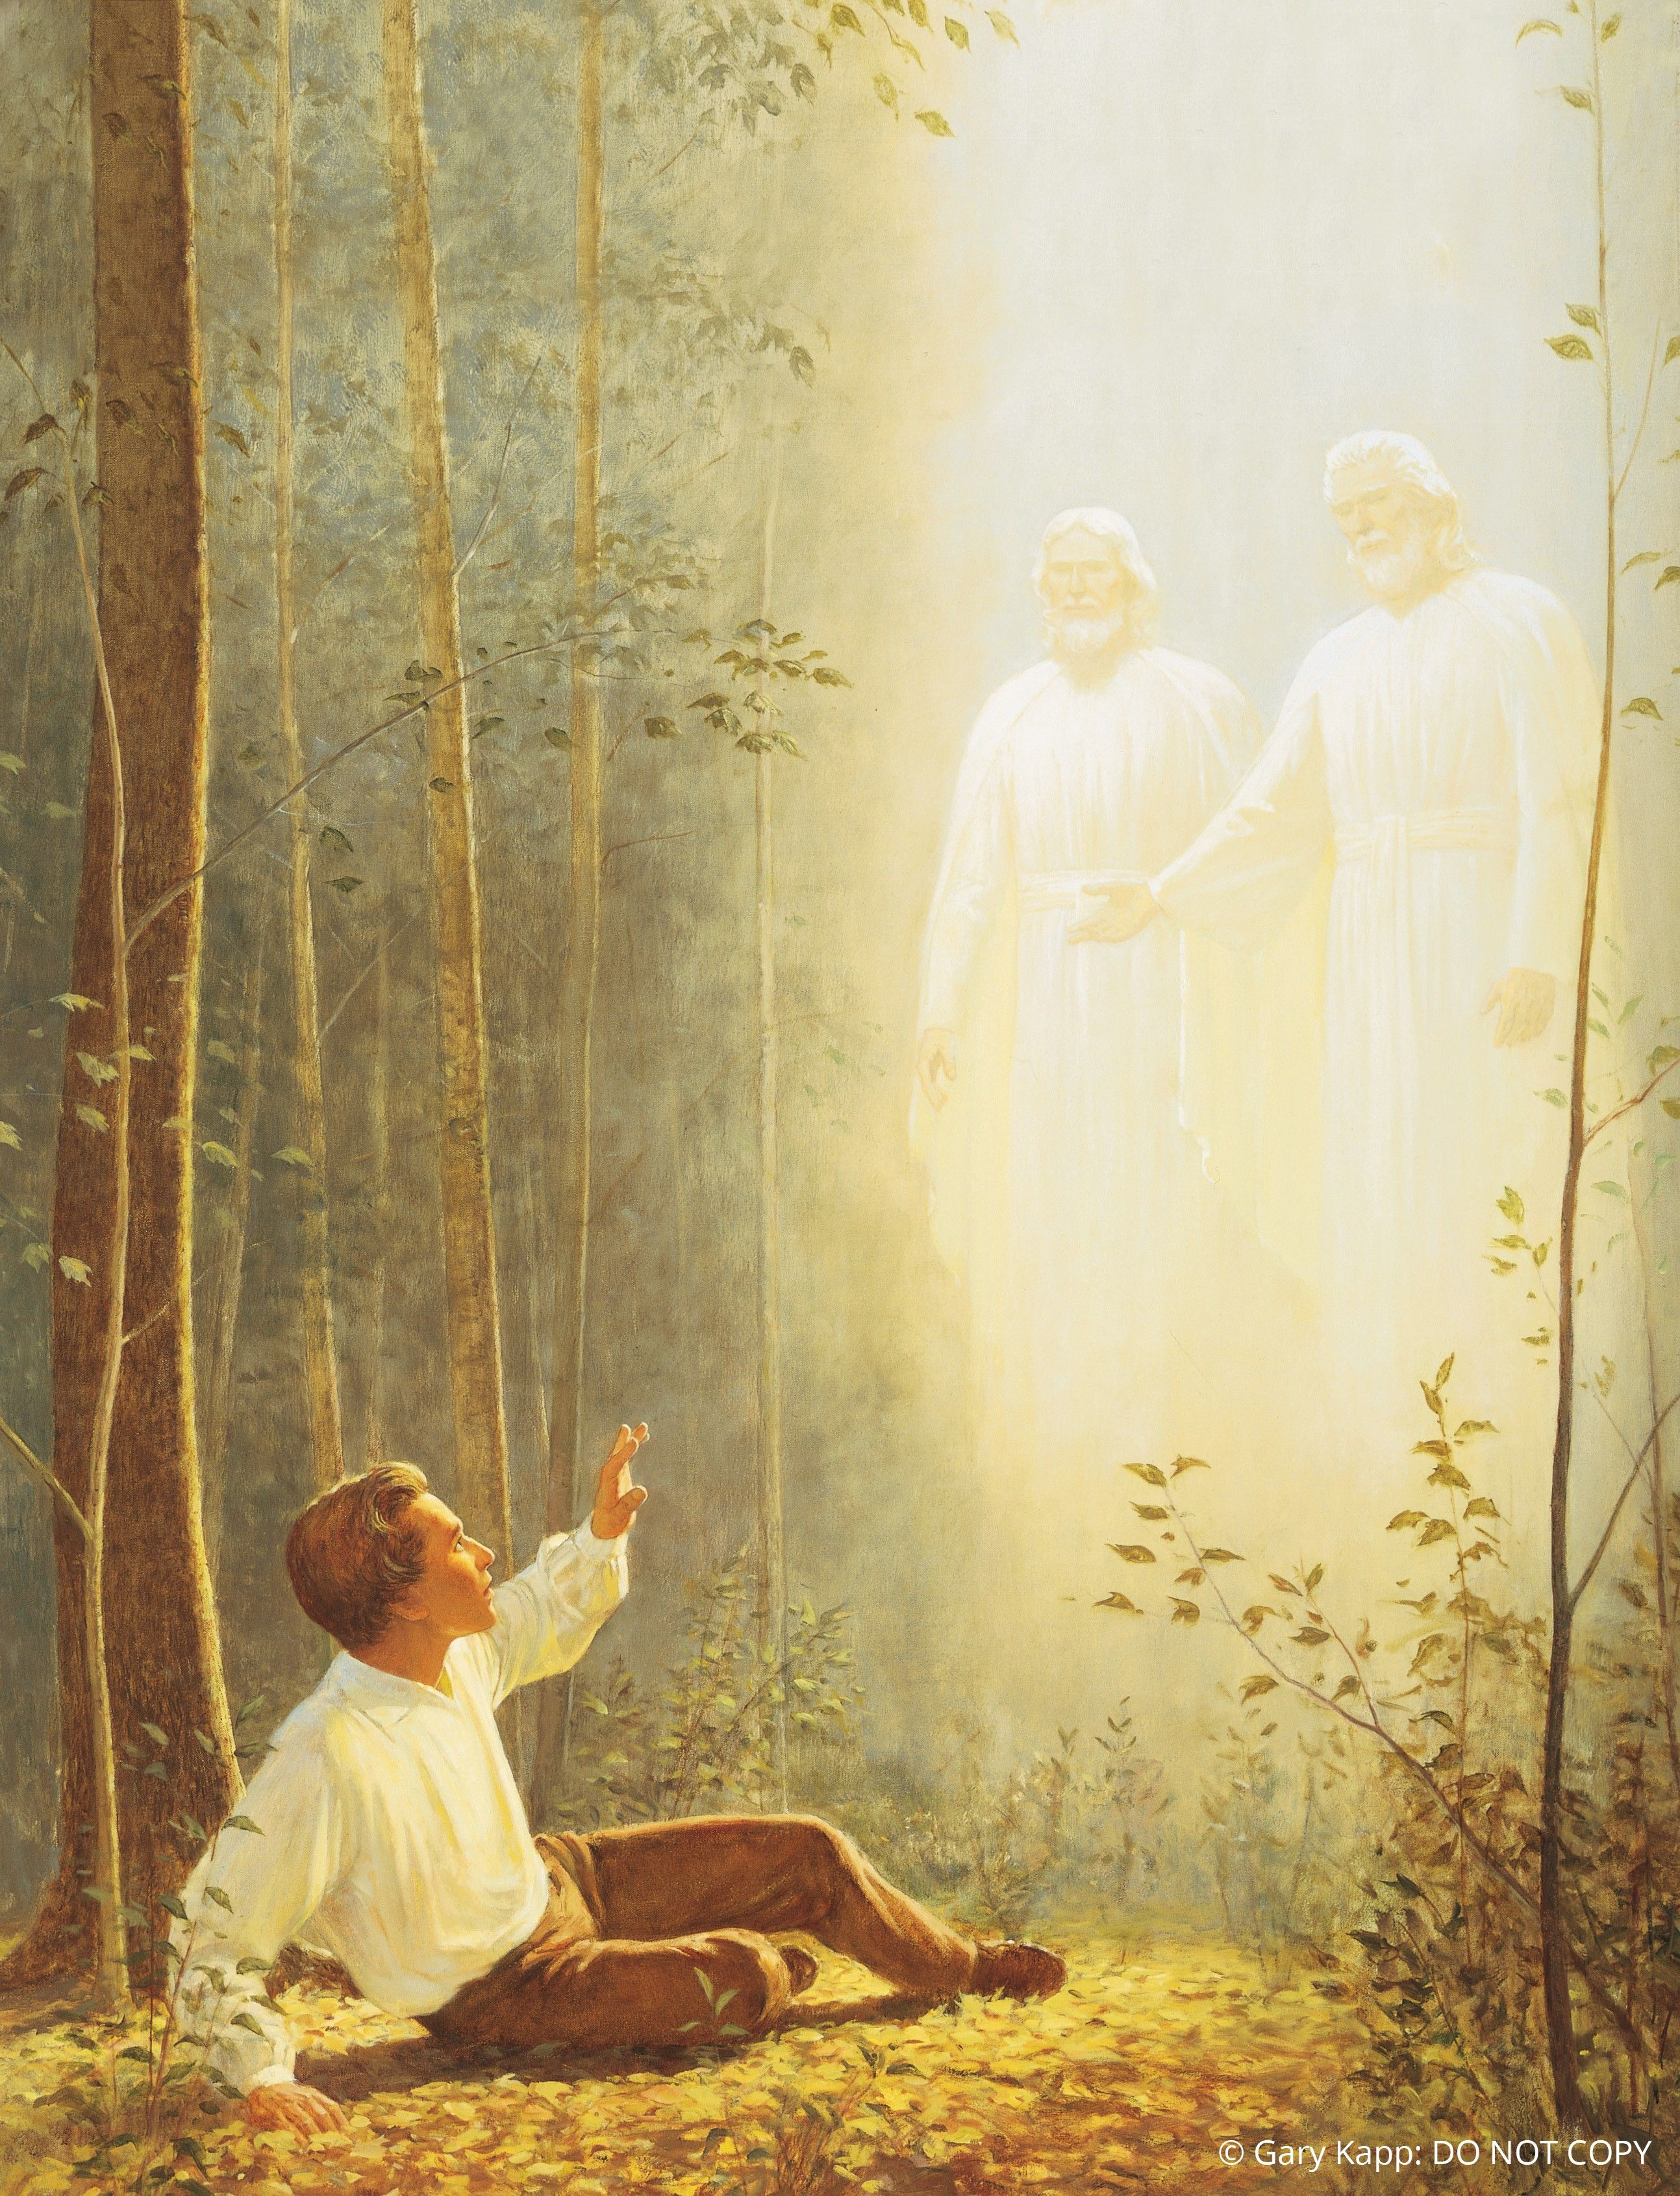 The First Vision, by Gary Kapp; GAB 90; nursery manual lesson 9, page 42; Joseph Smith—History 1:14–20; © Gary Kapp: DO NOT COPY. This asset is for Church use and online viewing only. © undefined ipCode 1.